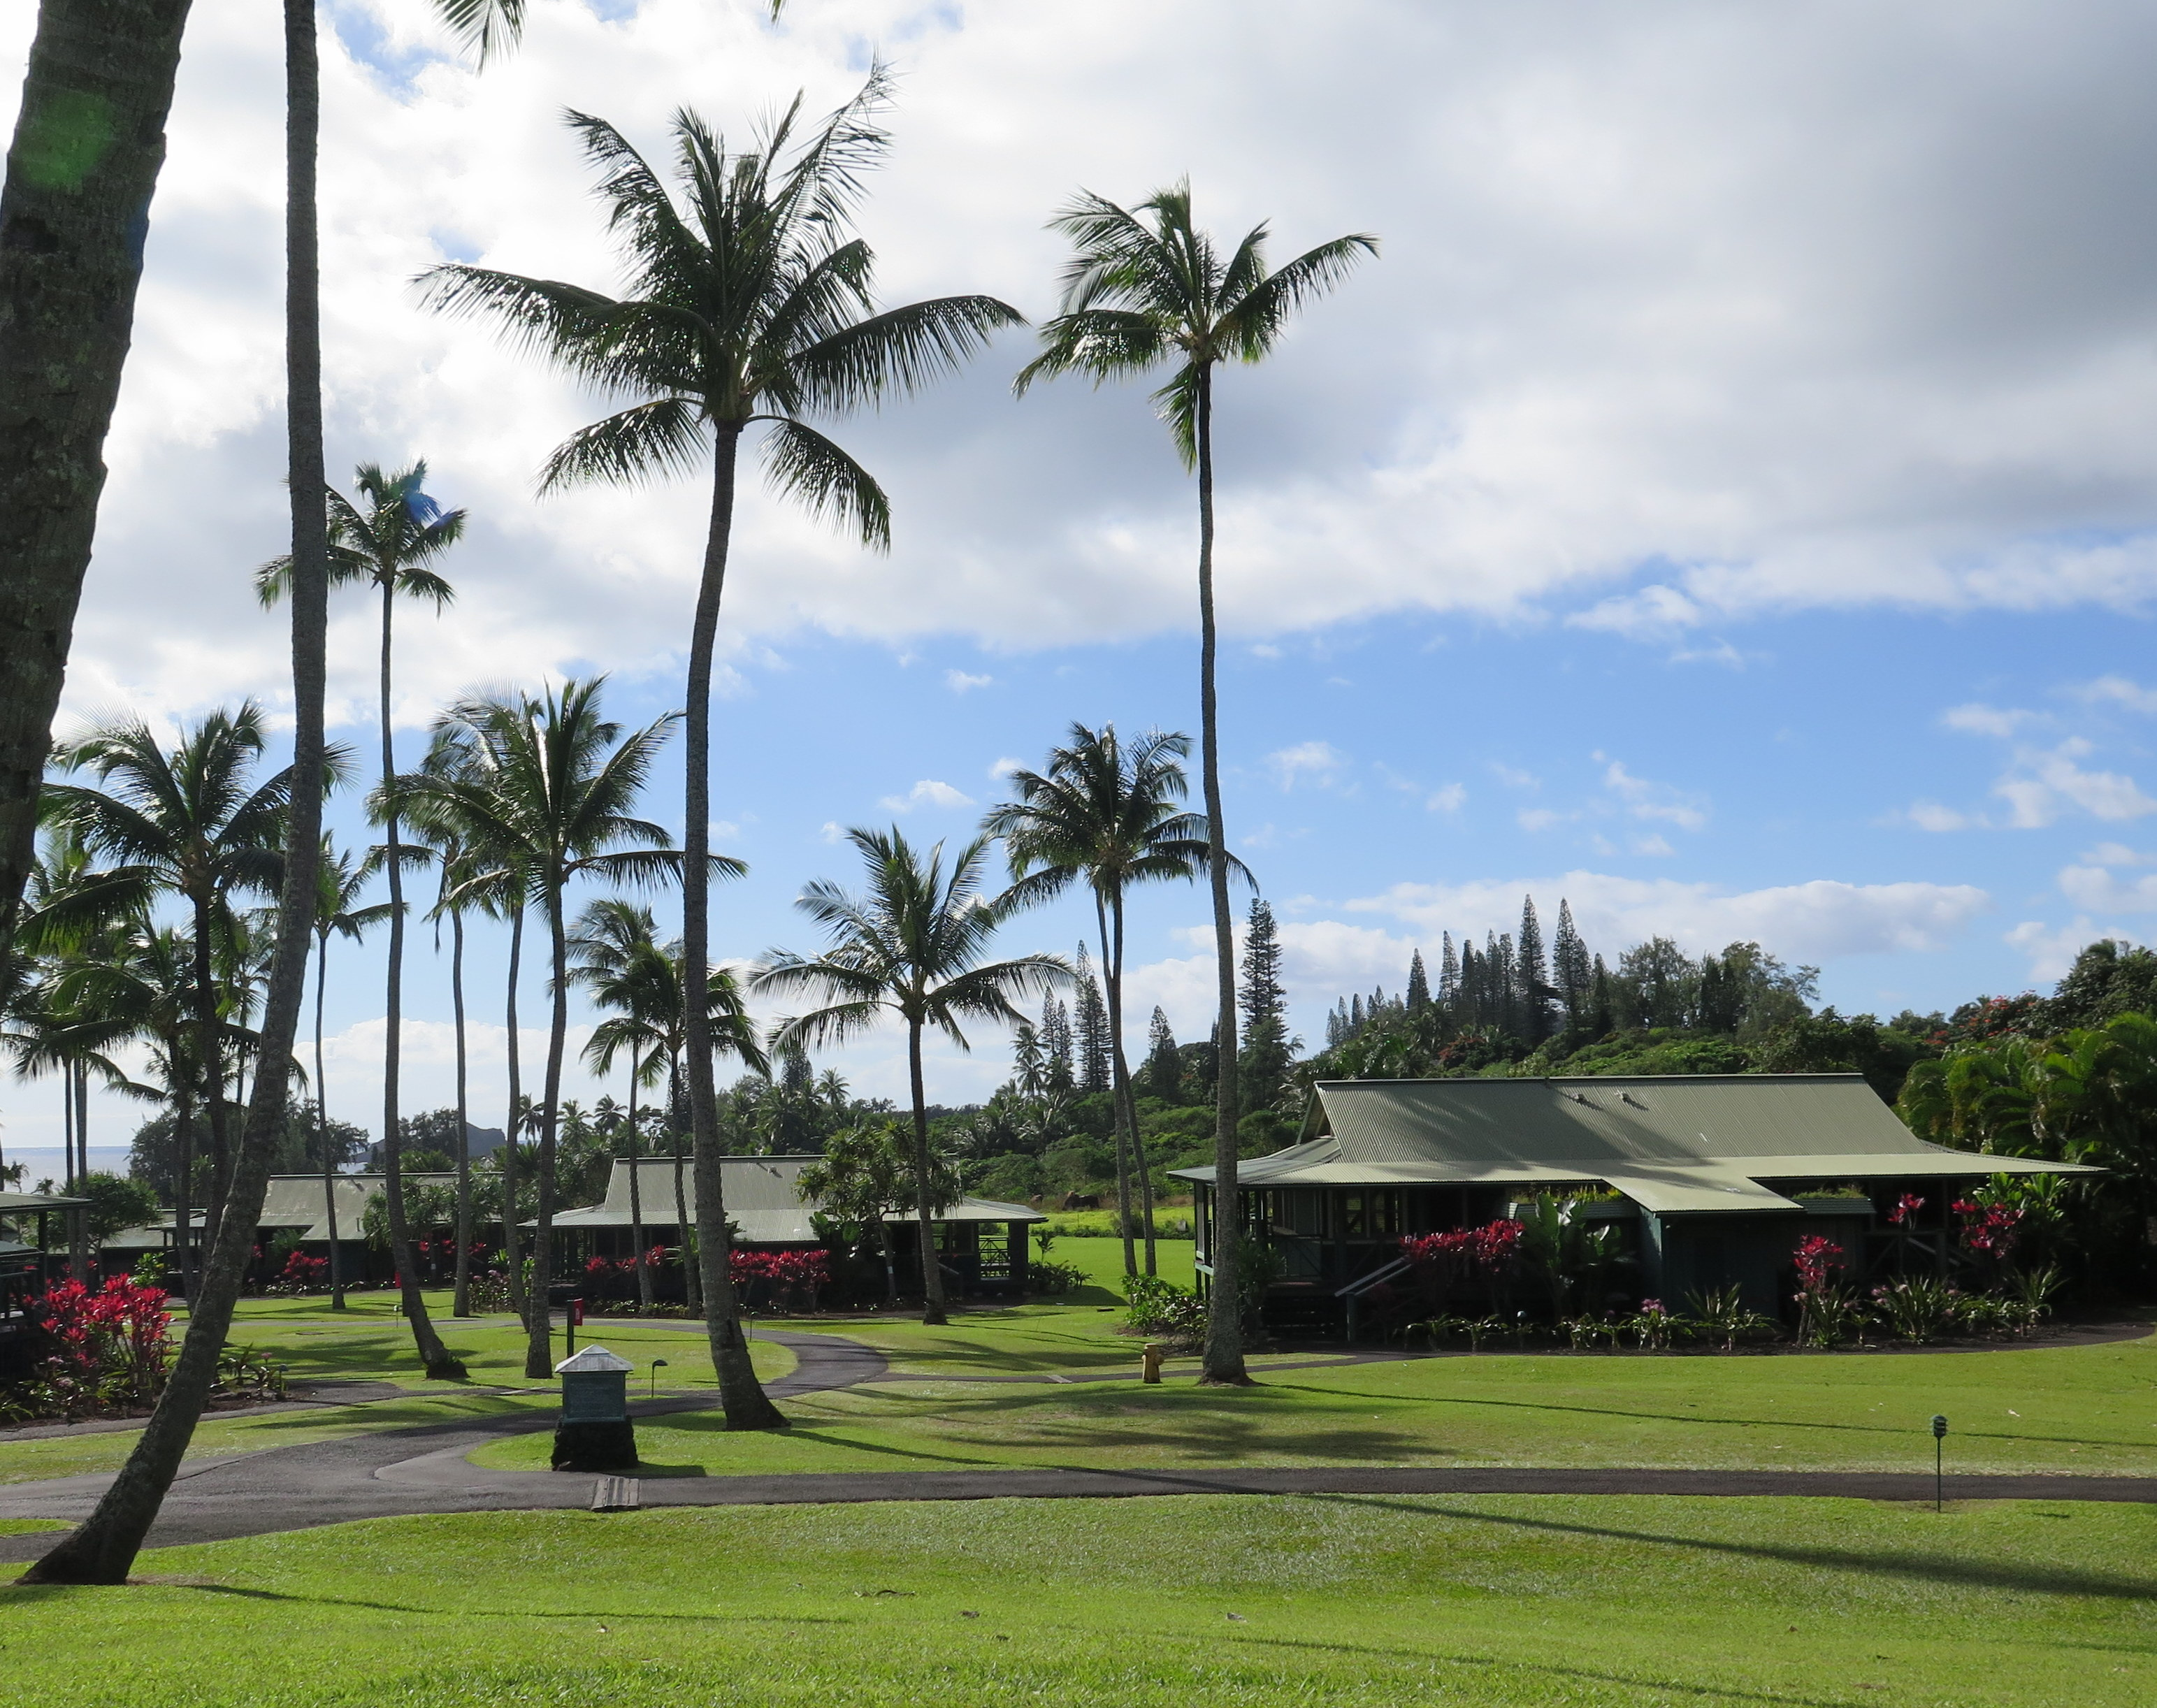 The Travaasa Hana is secluded and beautiful; a great wedding spot on Maui.